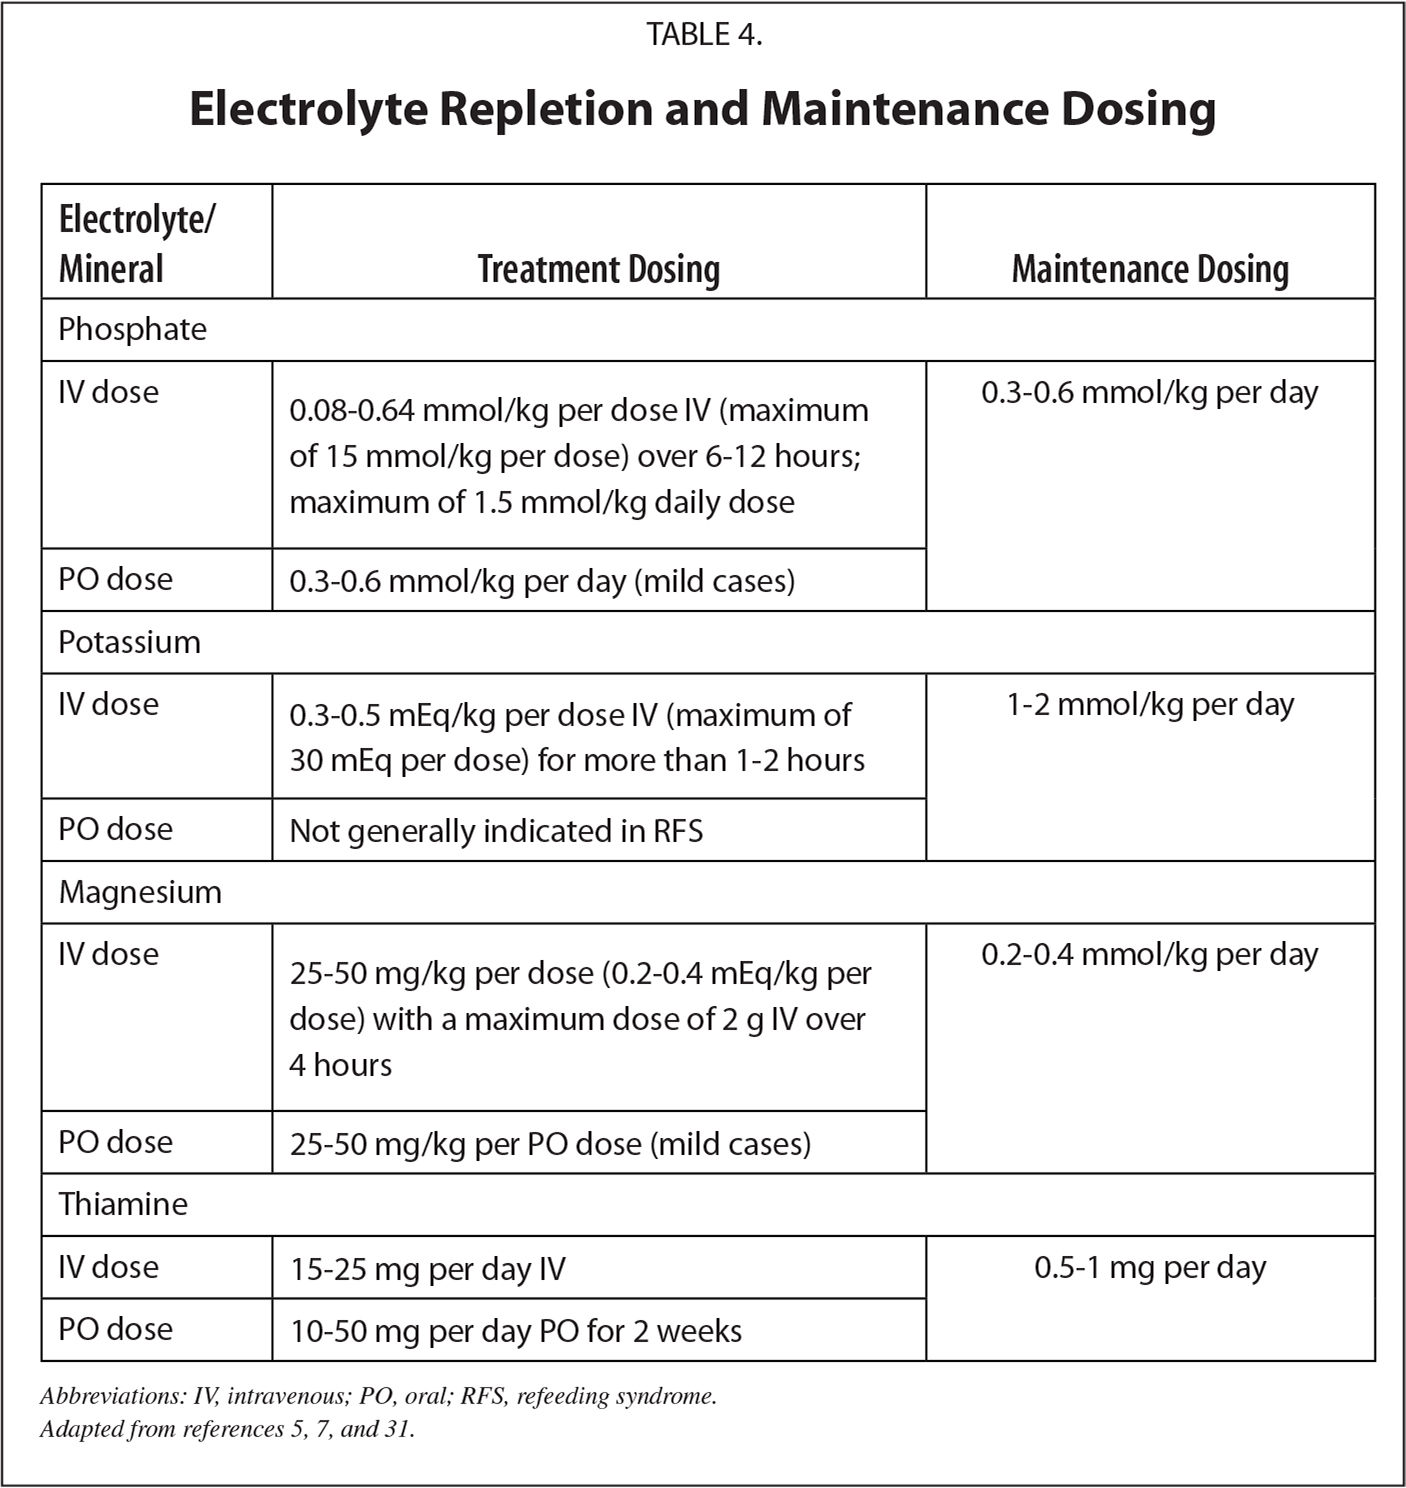 Electrolyte Repletion and Maintenance Dosing